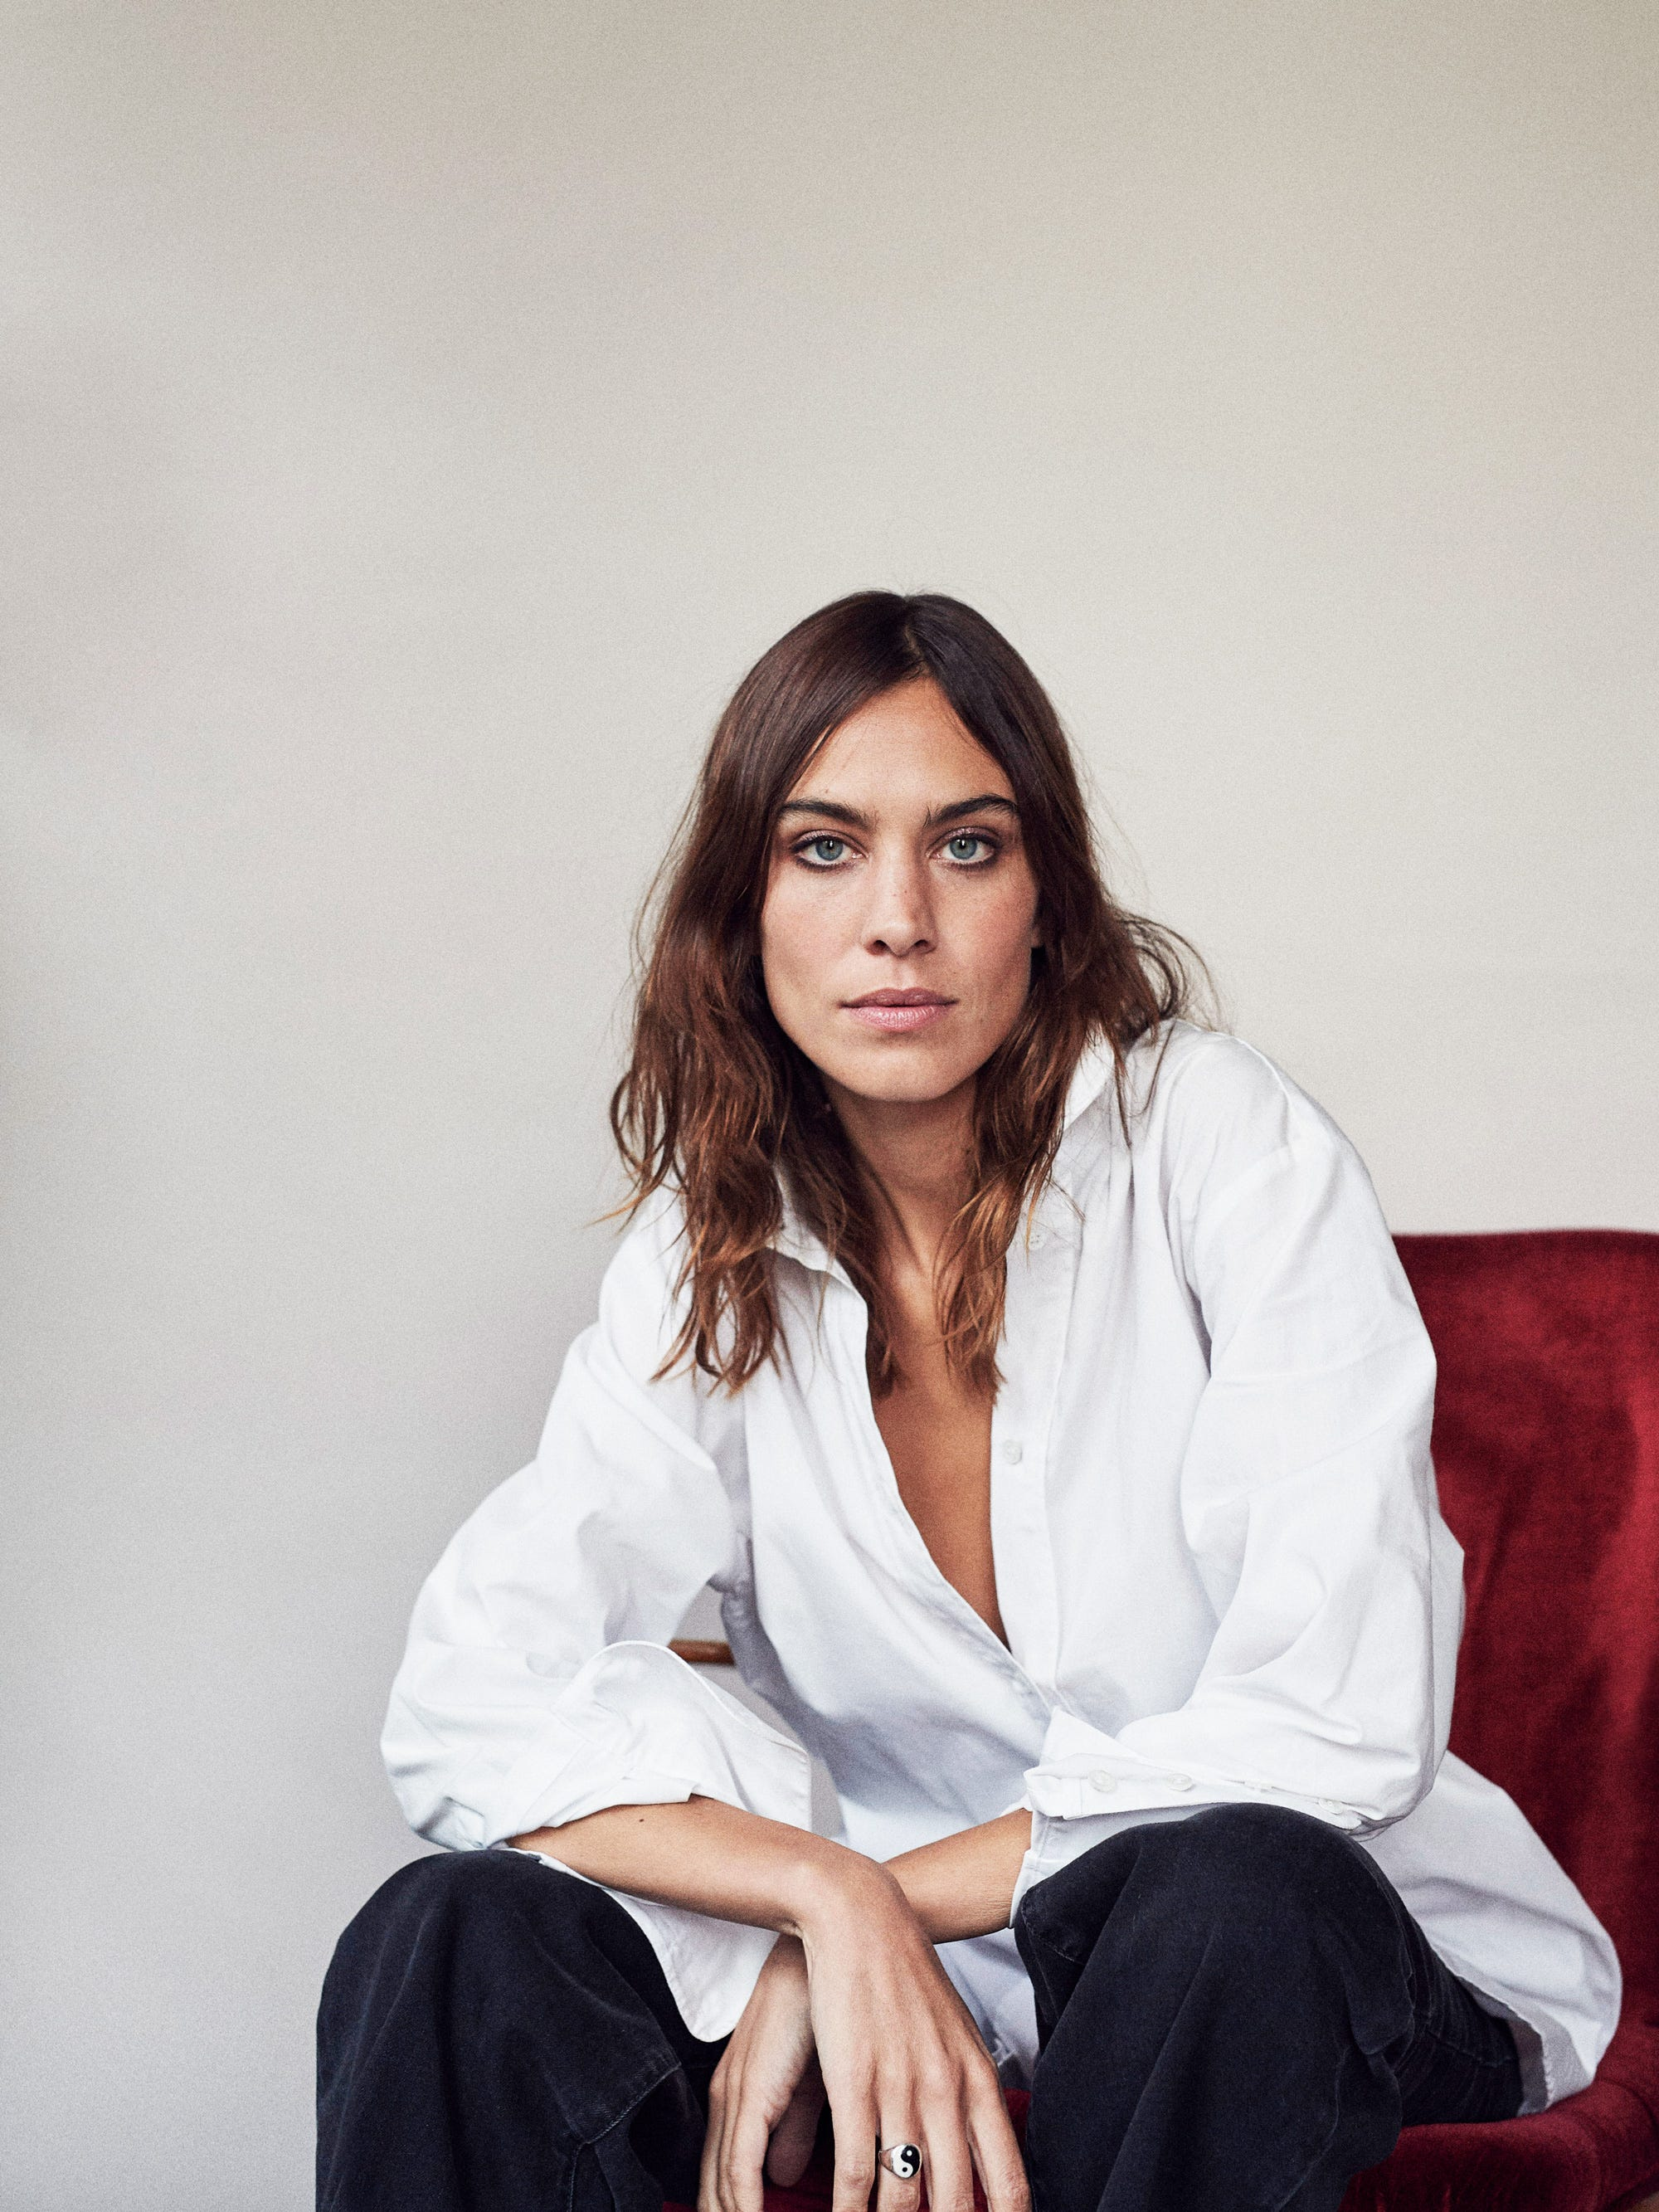 Alexa Chung's YouTube Channel Will Give A Behind-The-Scenes Look Into Her World